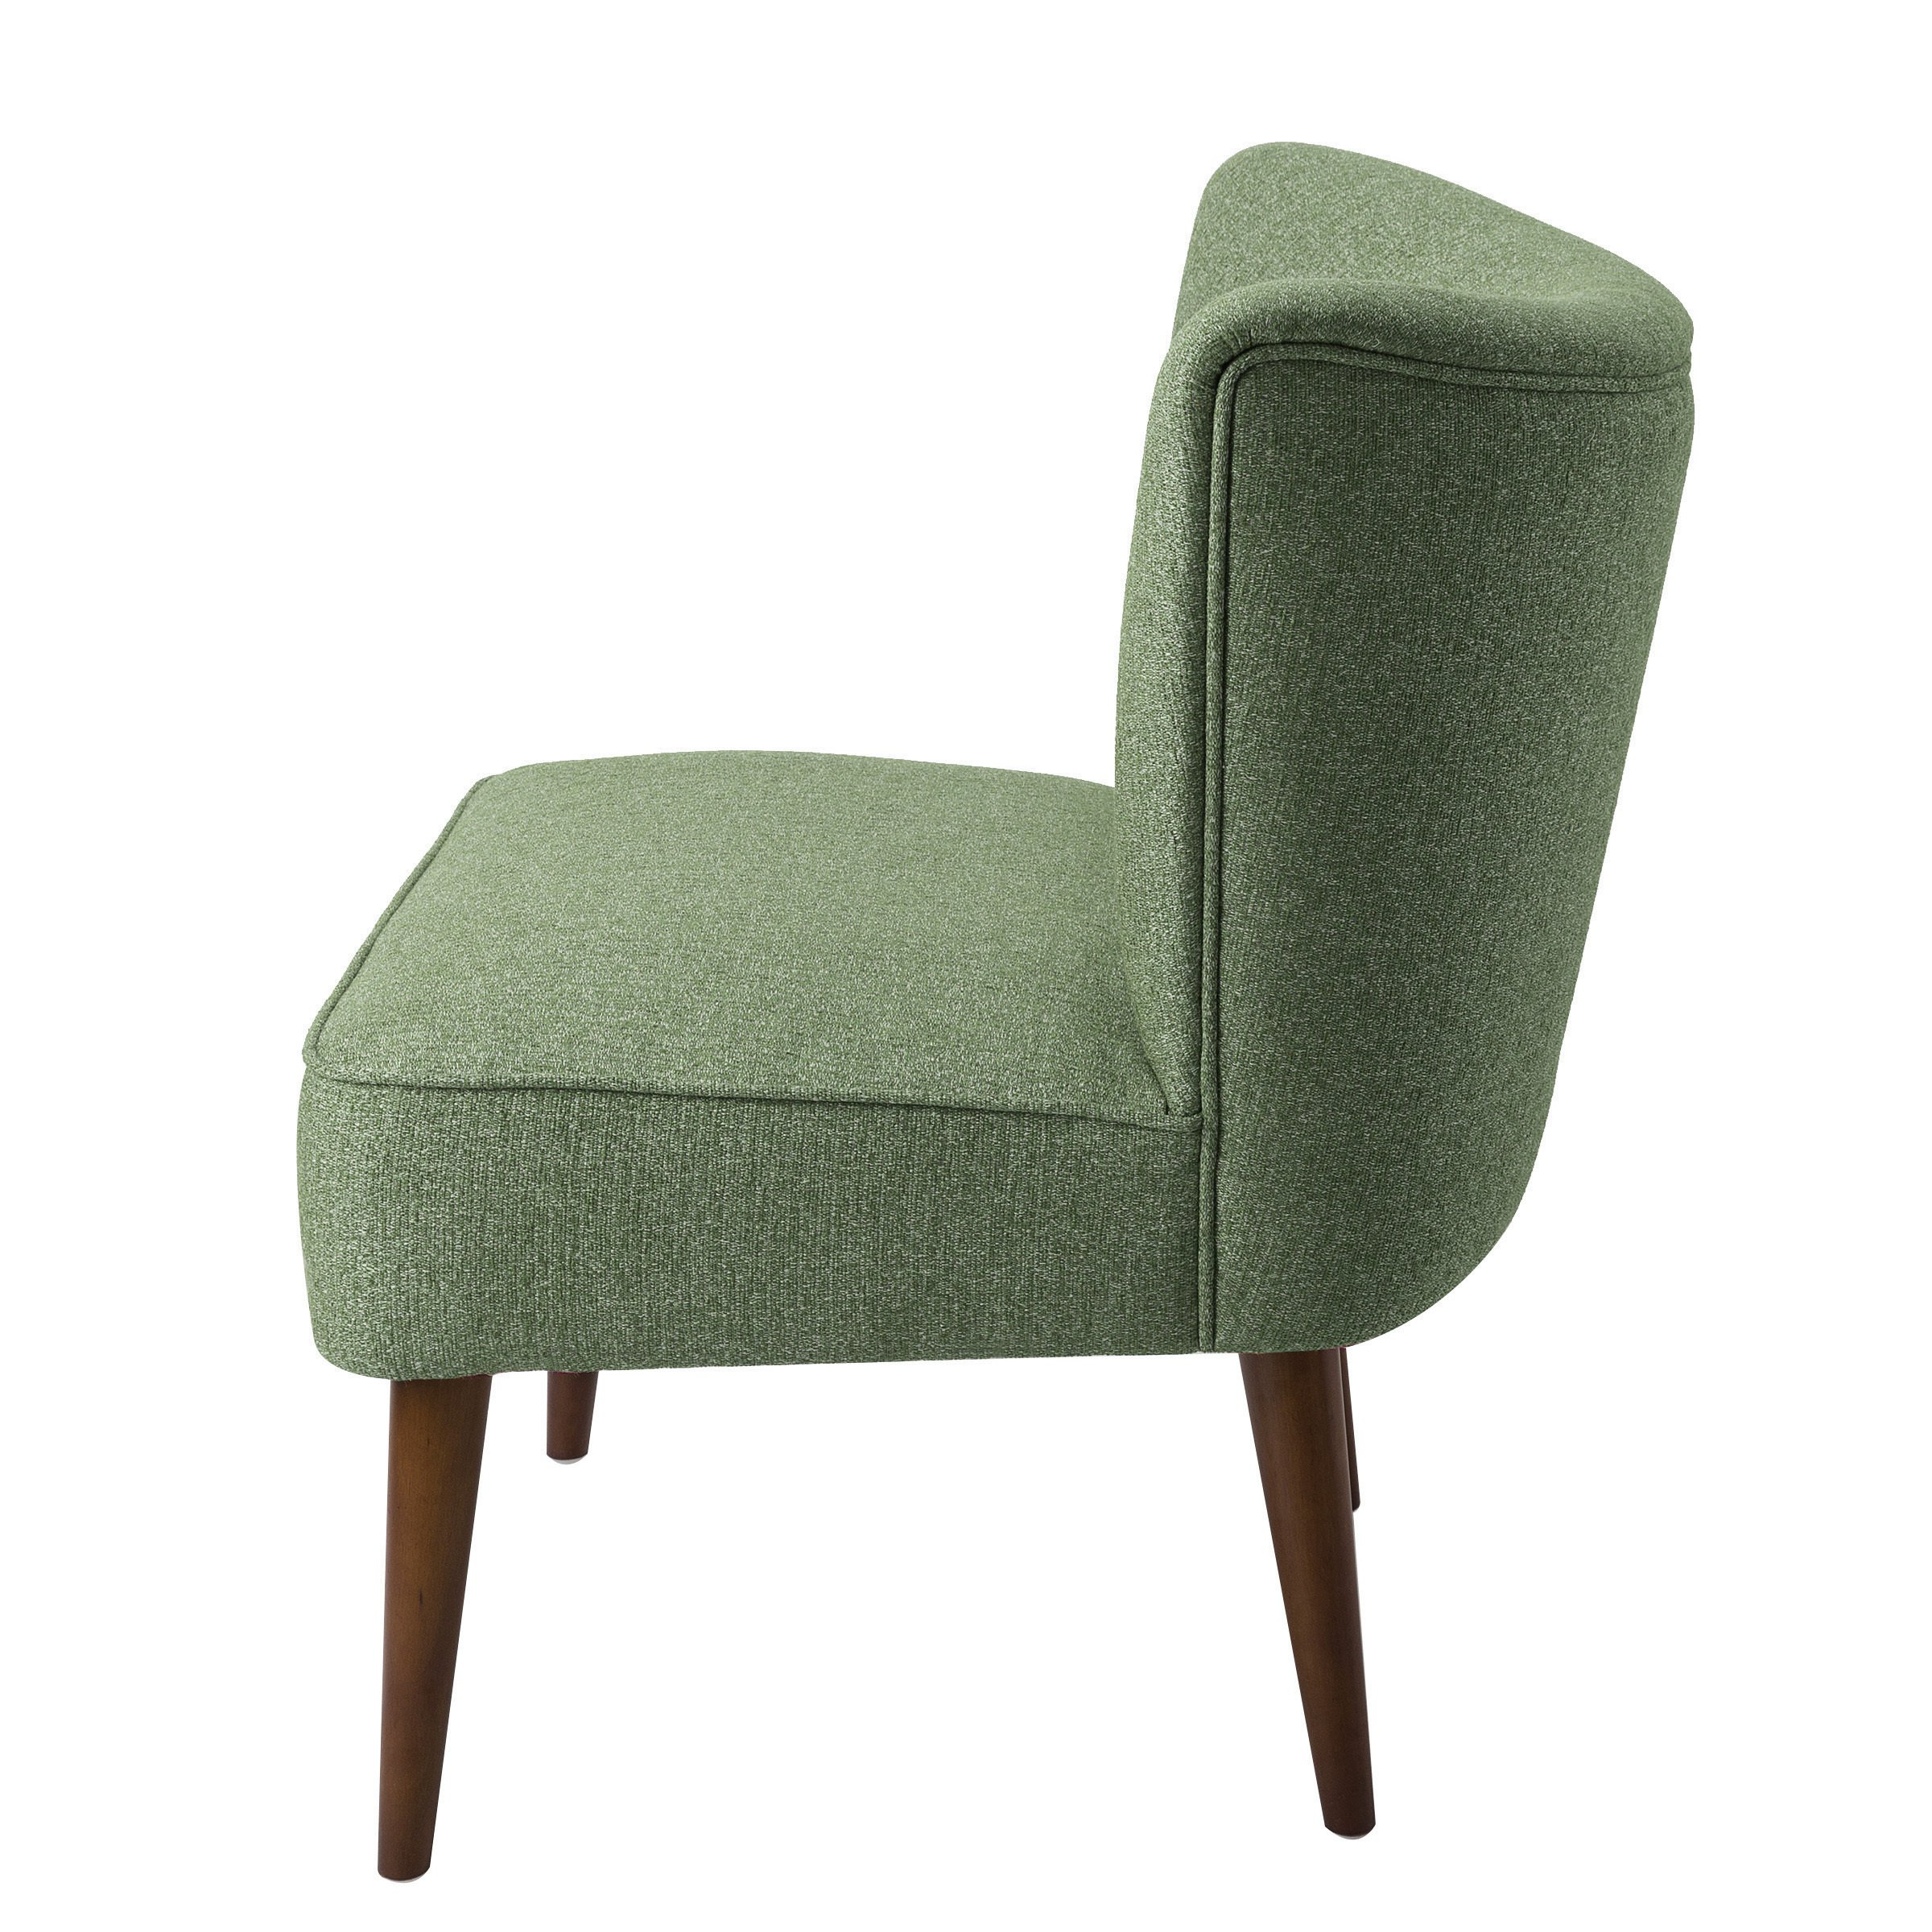 Newest Shop Homepop Chadwick Armless Accent Chair – Teal – On Sale – Free Inside Chadwick Gunmetal Swivel Chairs (View 4 of 20)